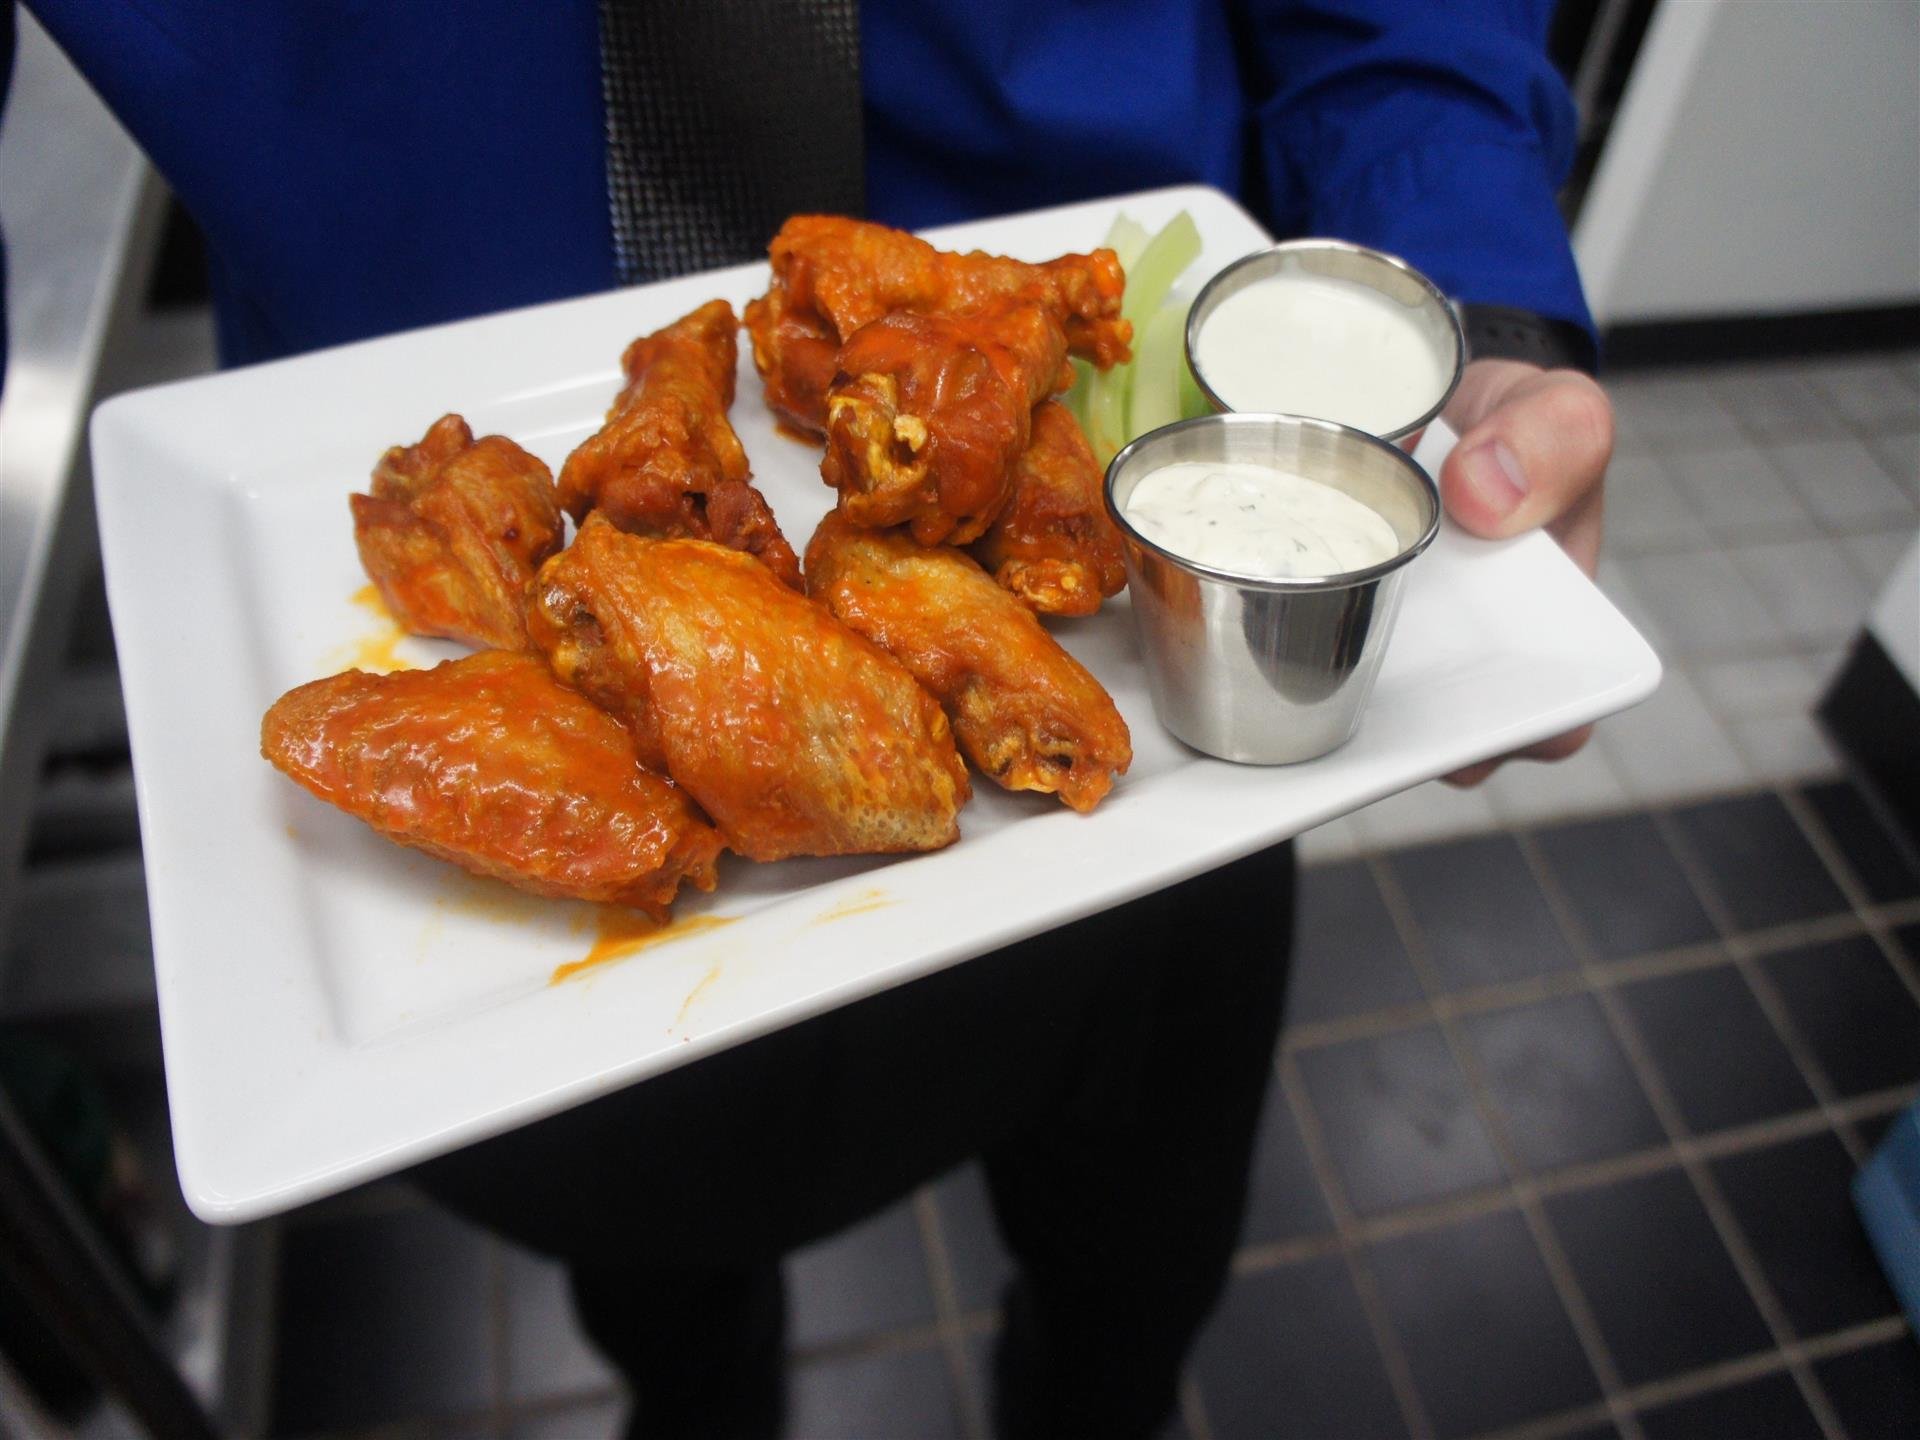 Buffalo wings with ranch and celery on white dish being held by server